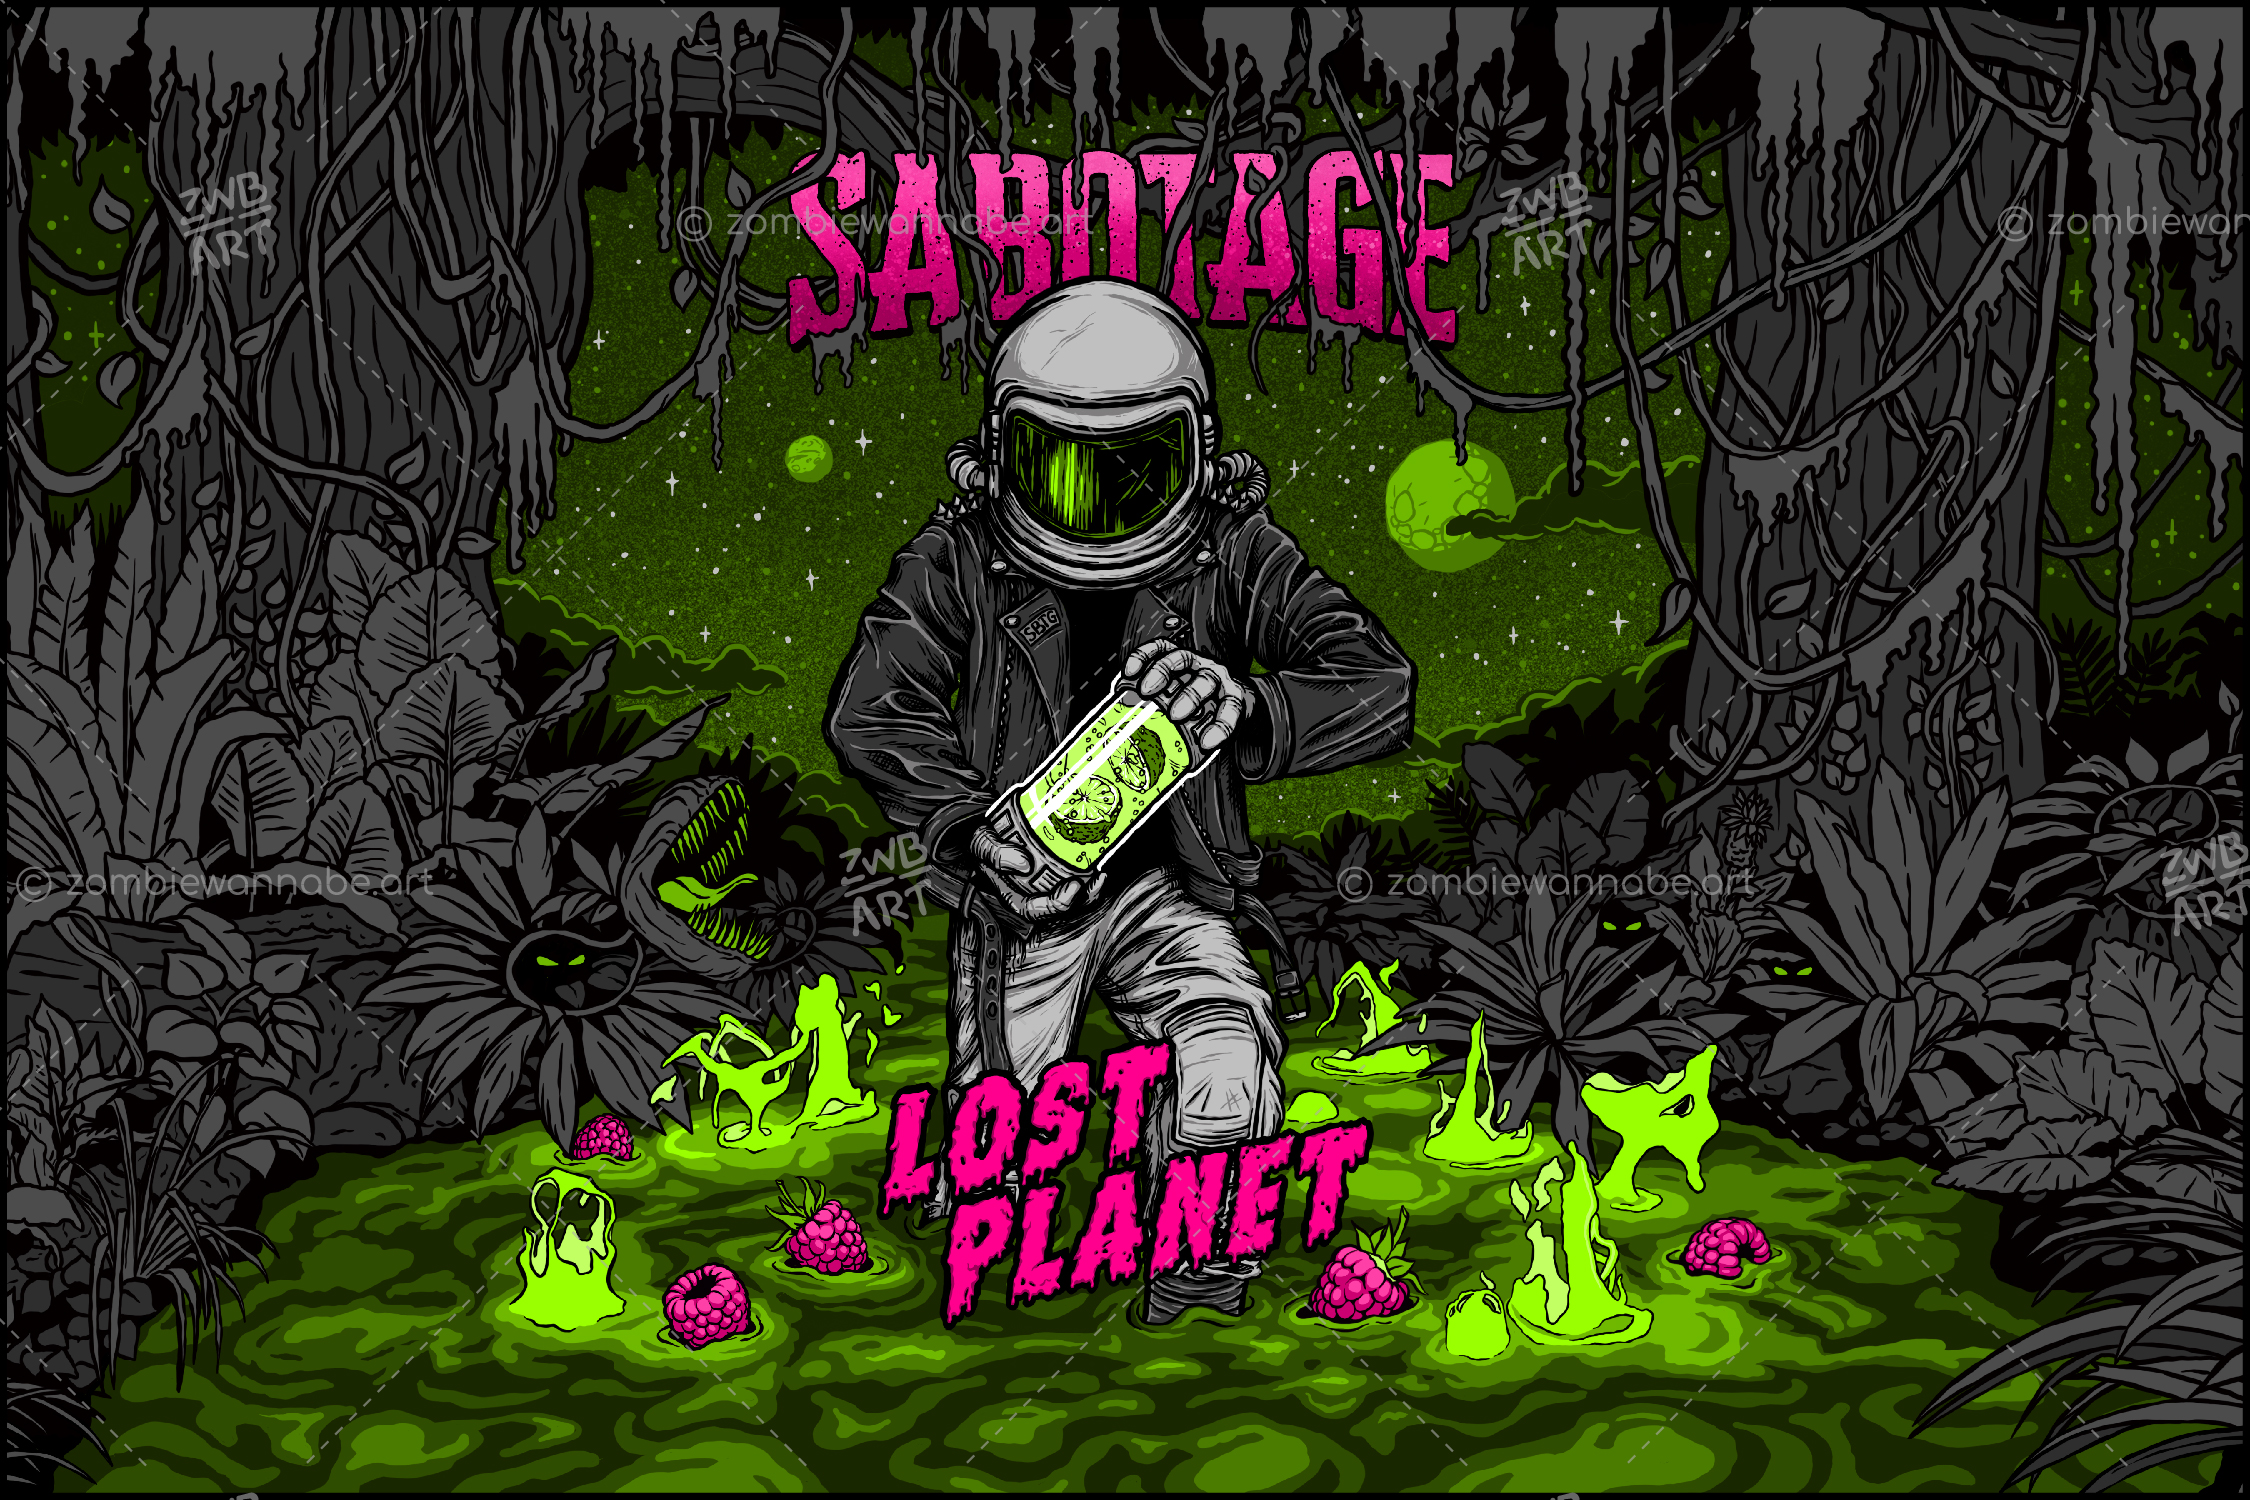 Sabotage - Lost Planet - commissioned work